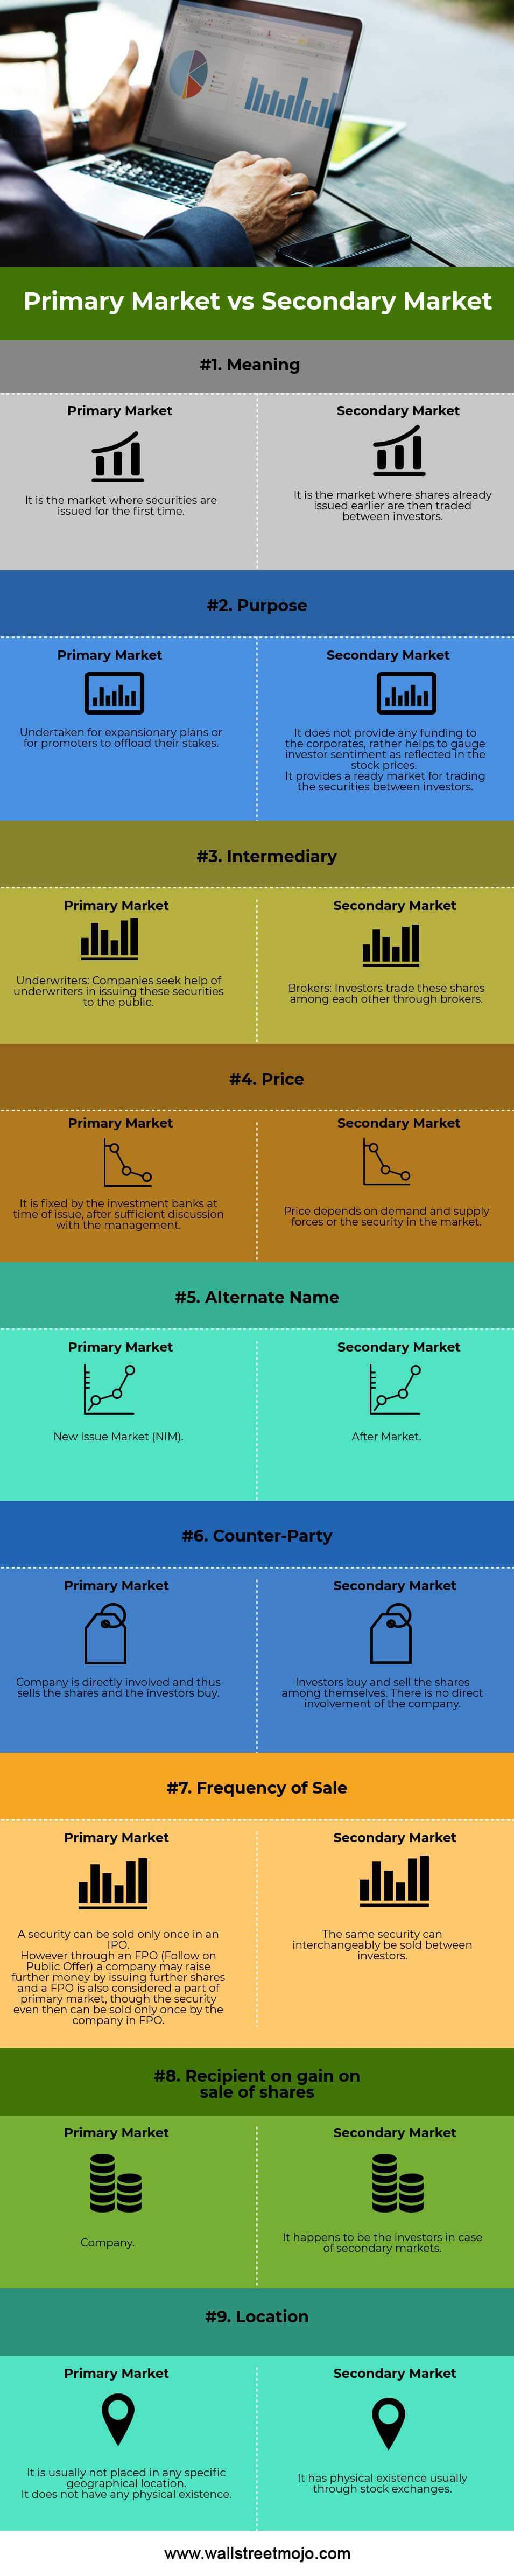 Primary-Market-vs-Secondary-Market-info